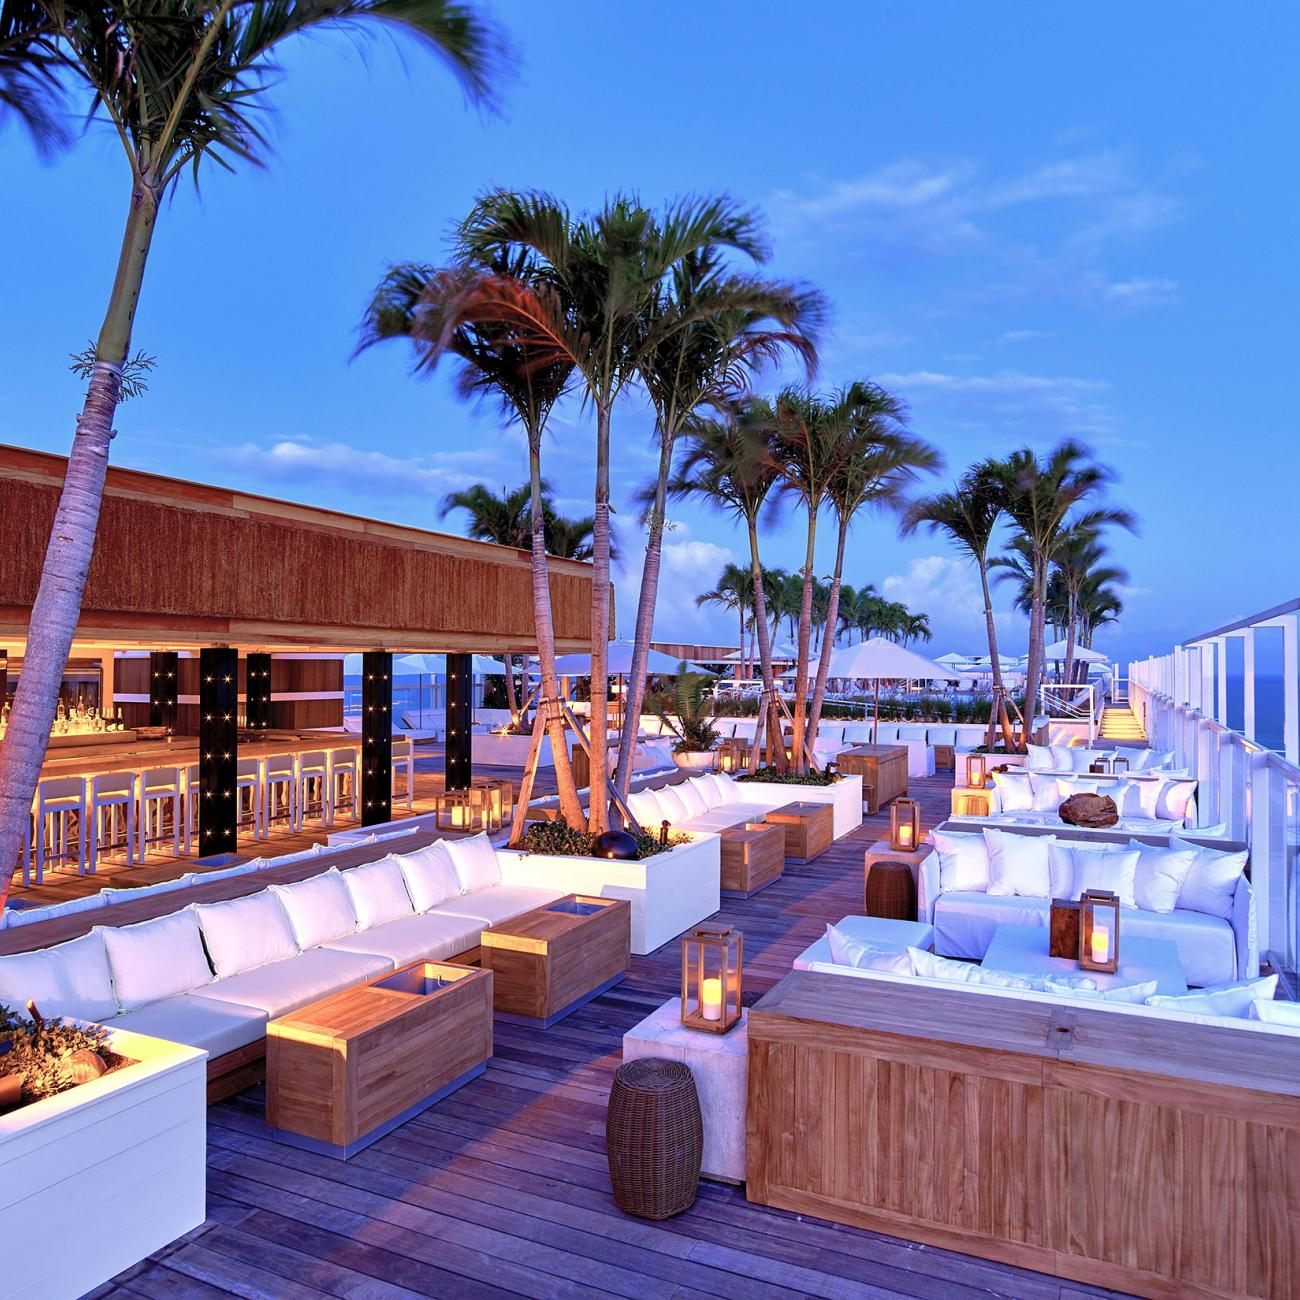 Watr At The Rooftop Restaurant 1 Hotel South Beach